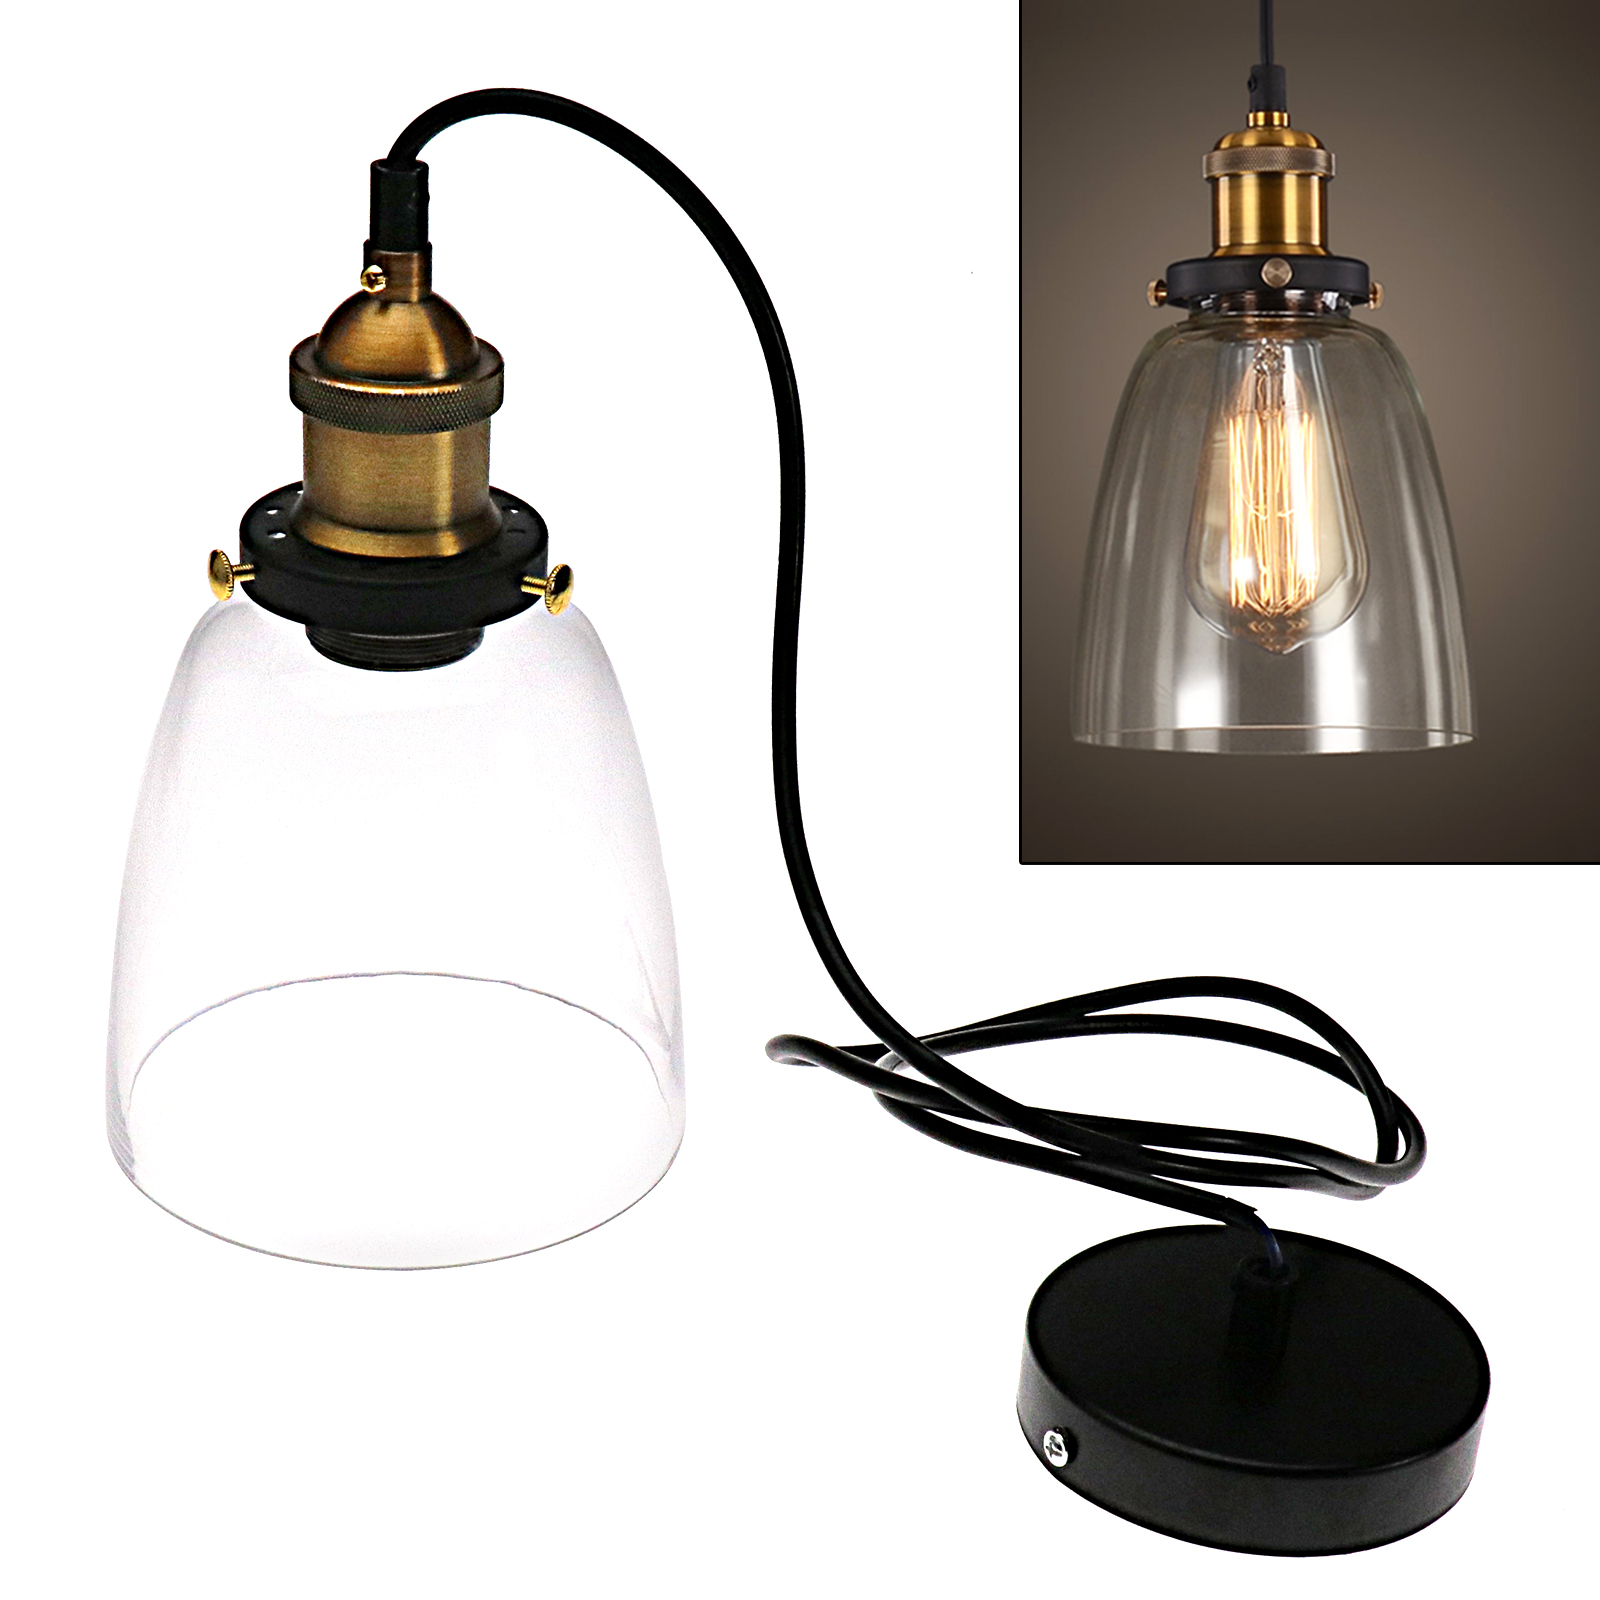 Details about retro industrial ceiling lamp shop glass pendant light shade lighting screws set